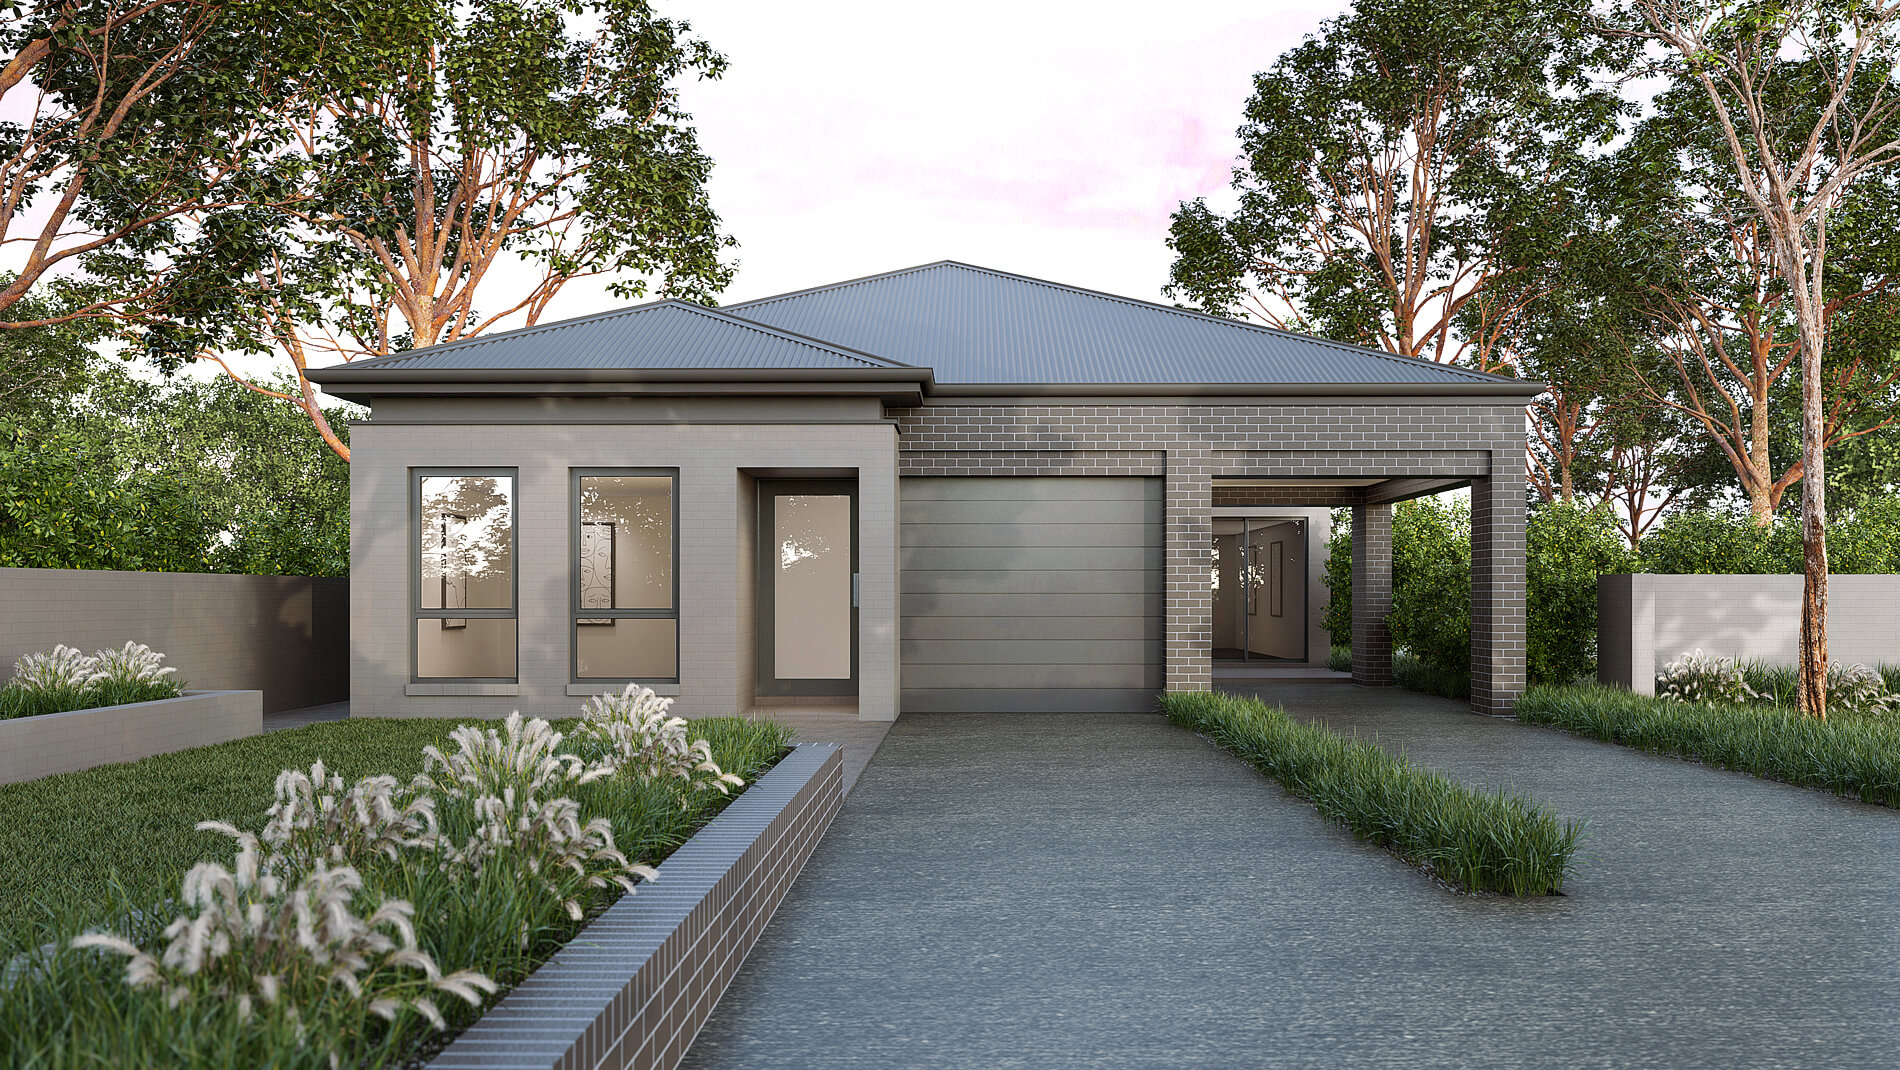 Versatile Homes Woodland Style Façade from our Duo Collection. An ideal styling where to be located within a new or established leafy neighbourhood.